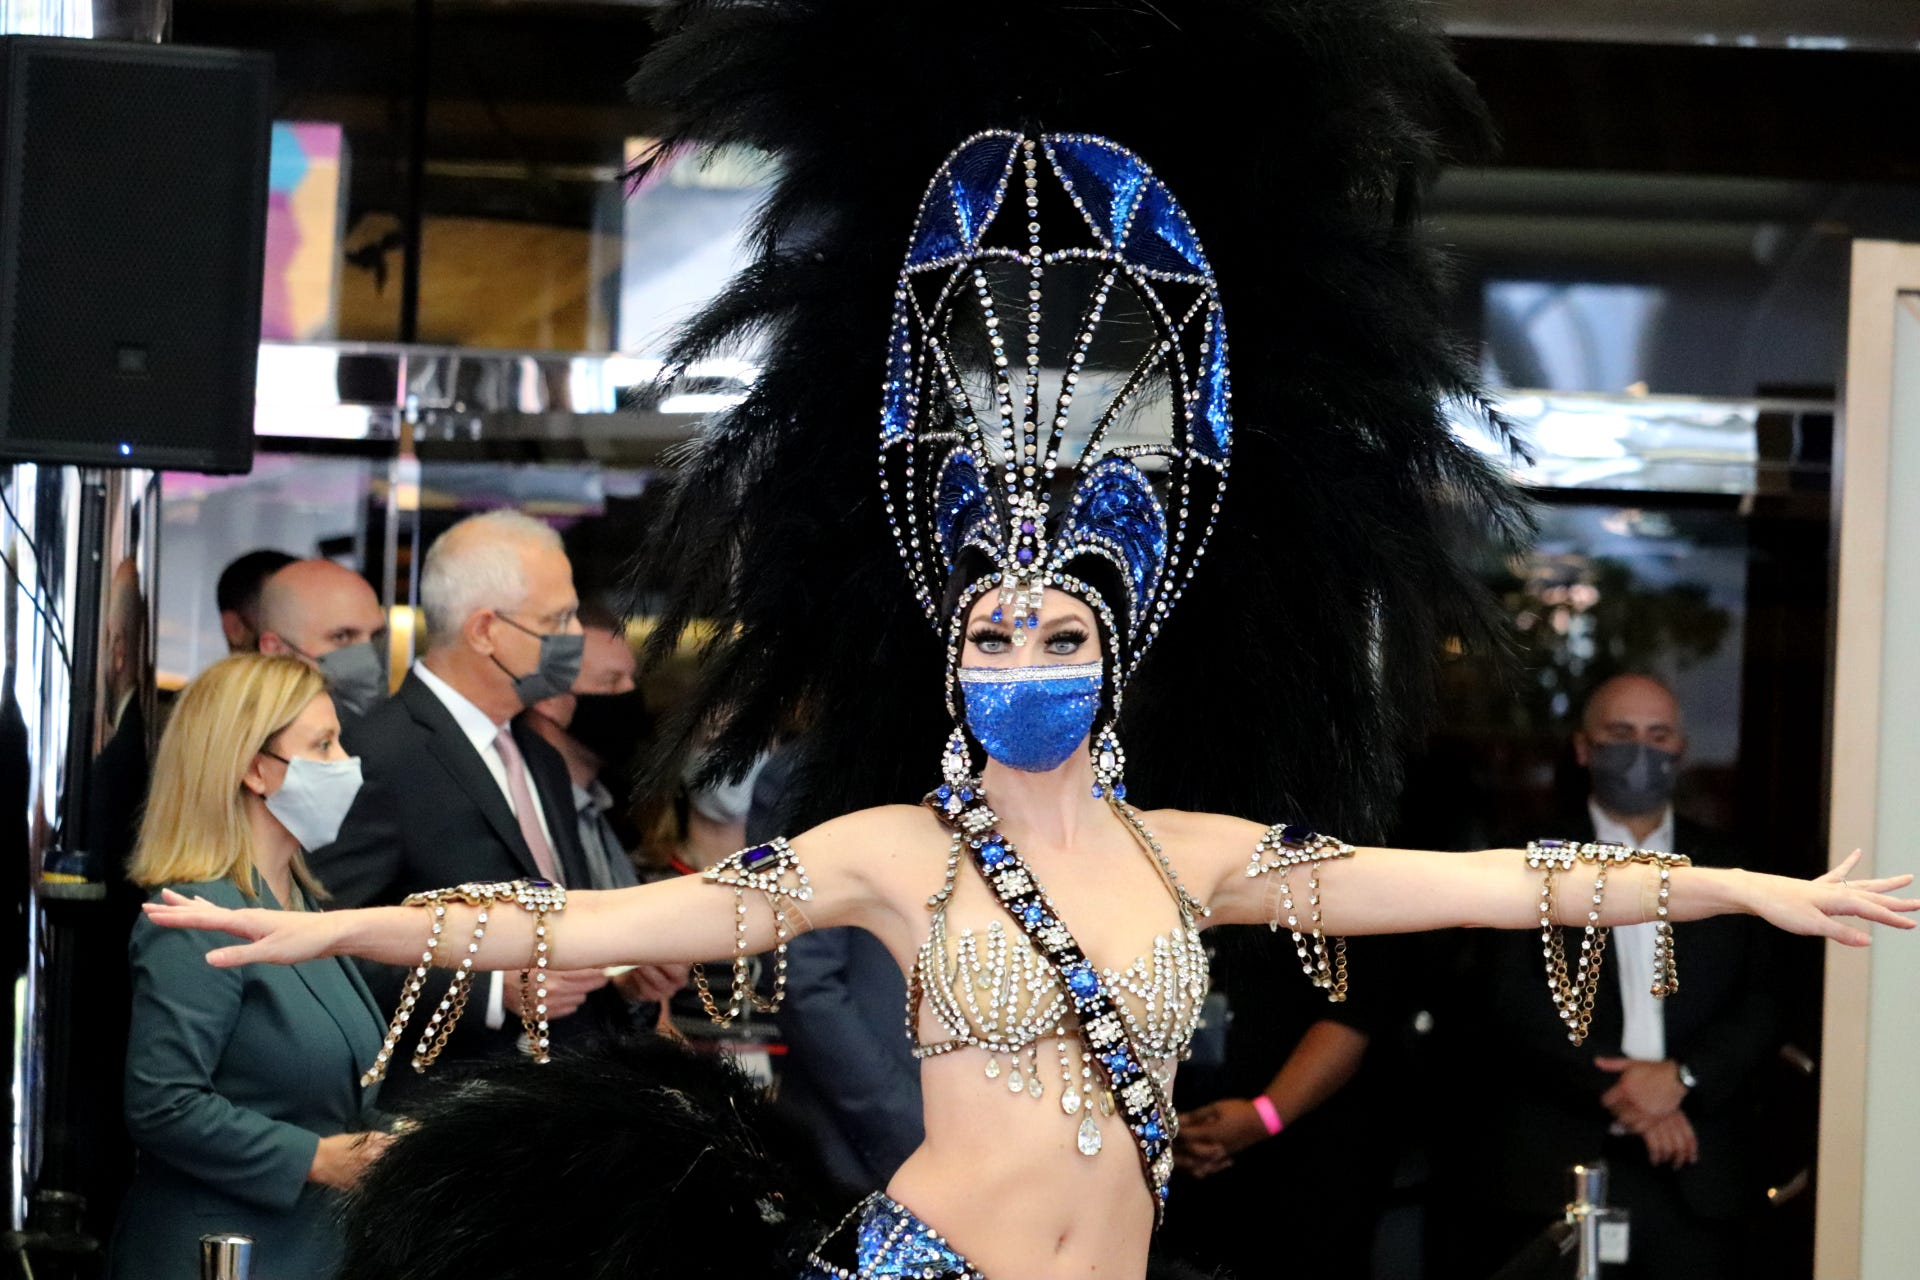 A Las Vegas showgirl welcomes guests to Bally's after a shutdown that lasted more than four months.